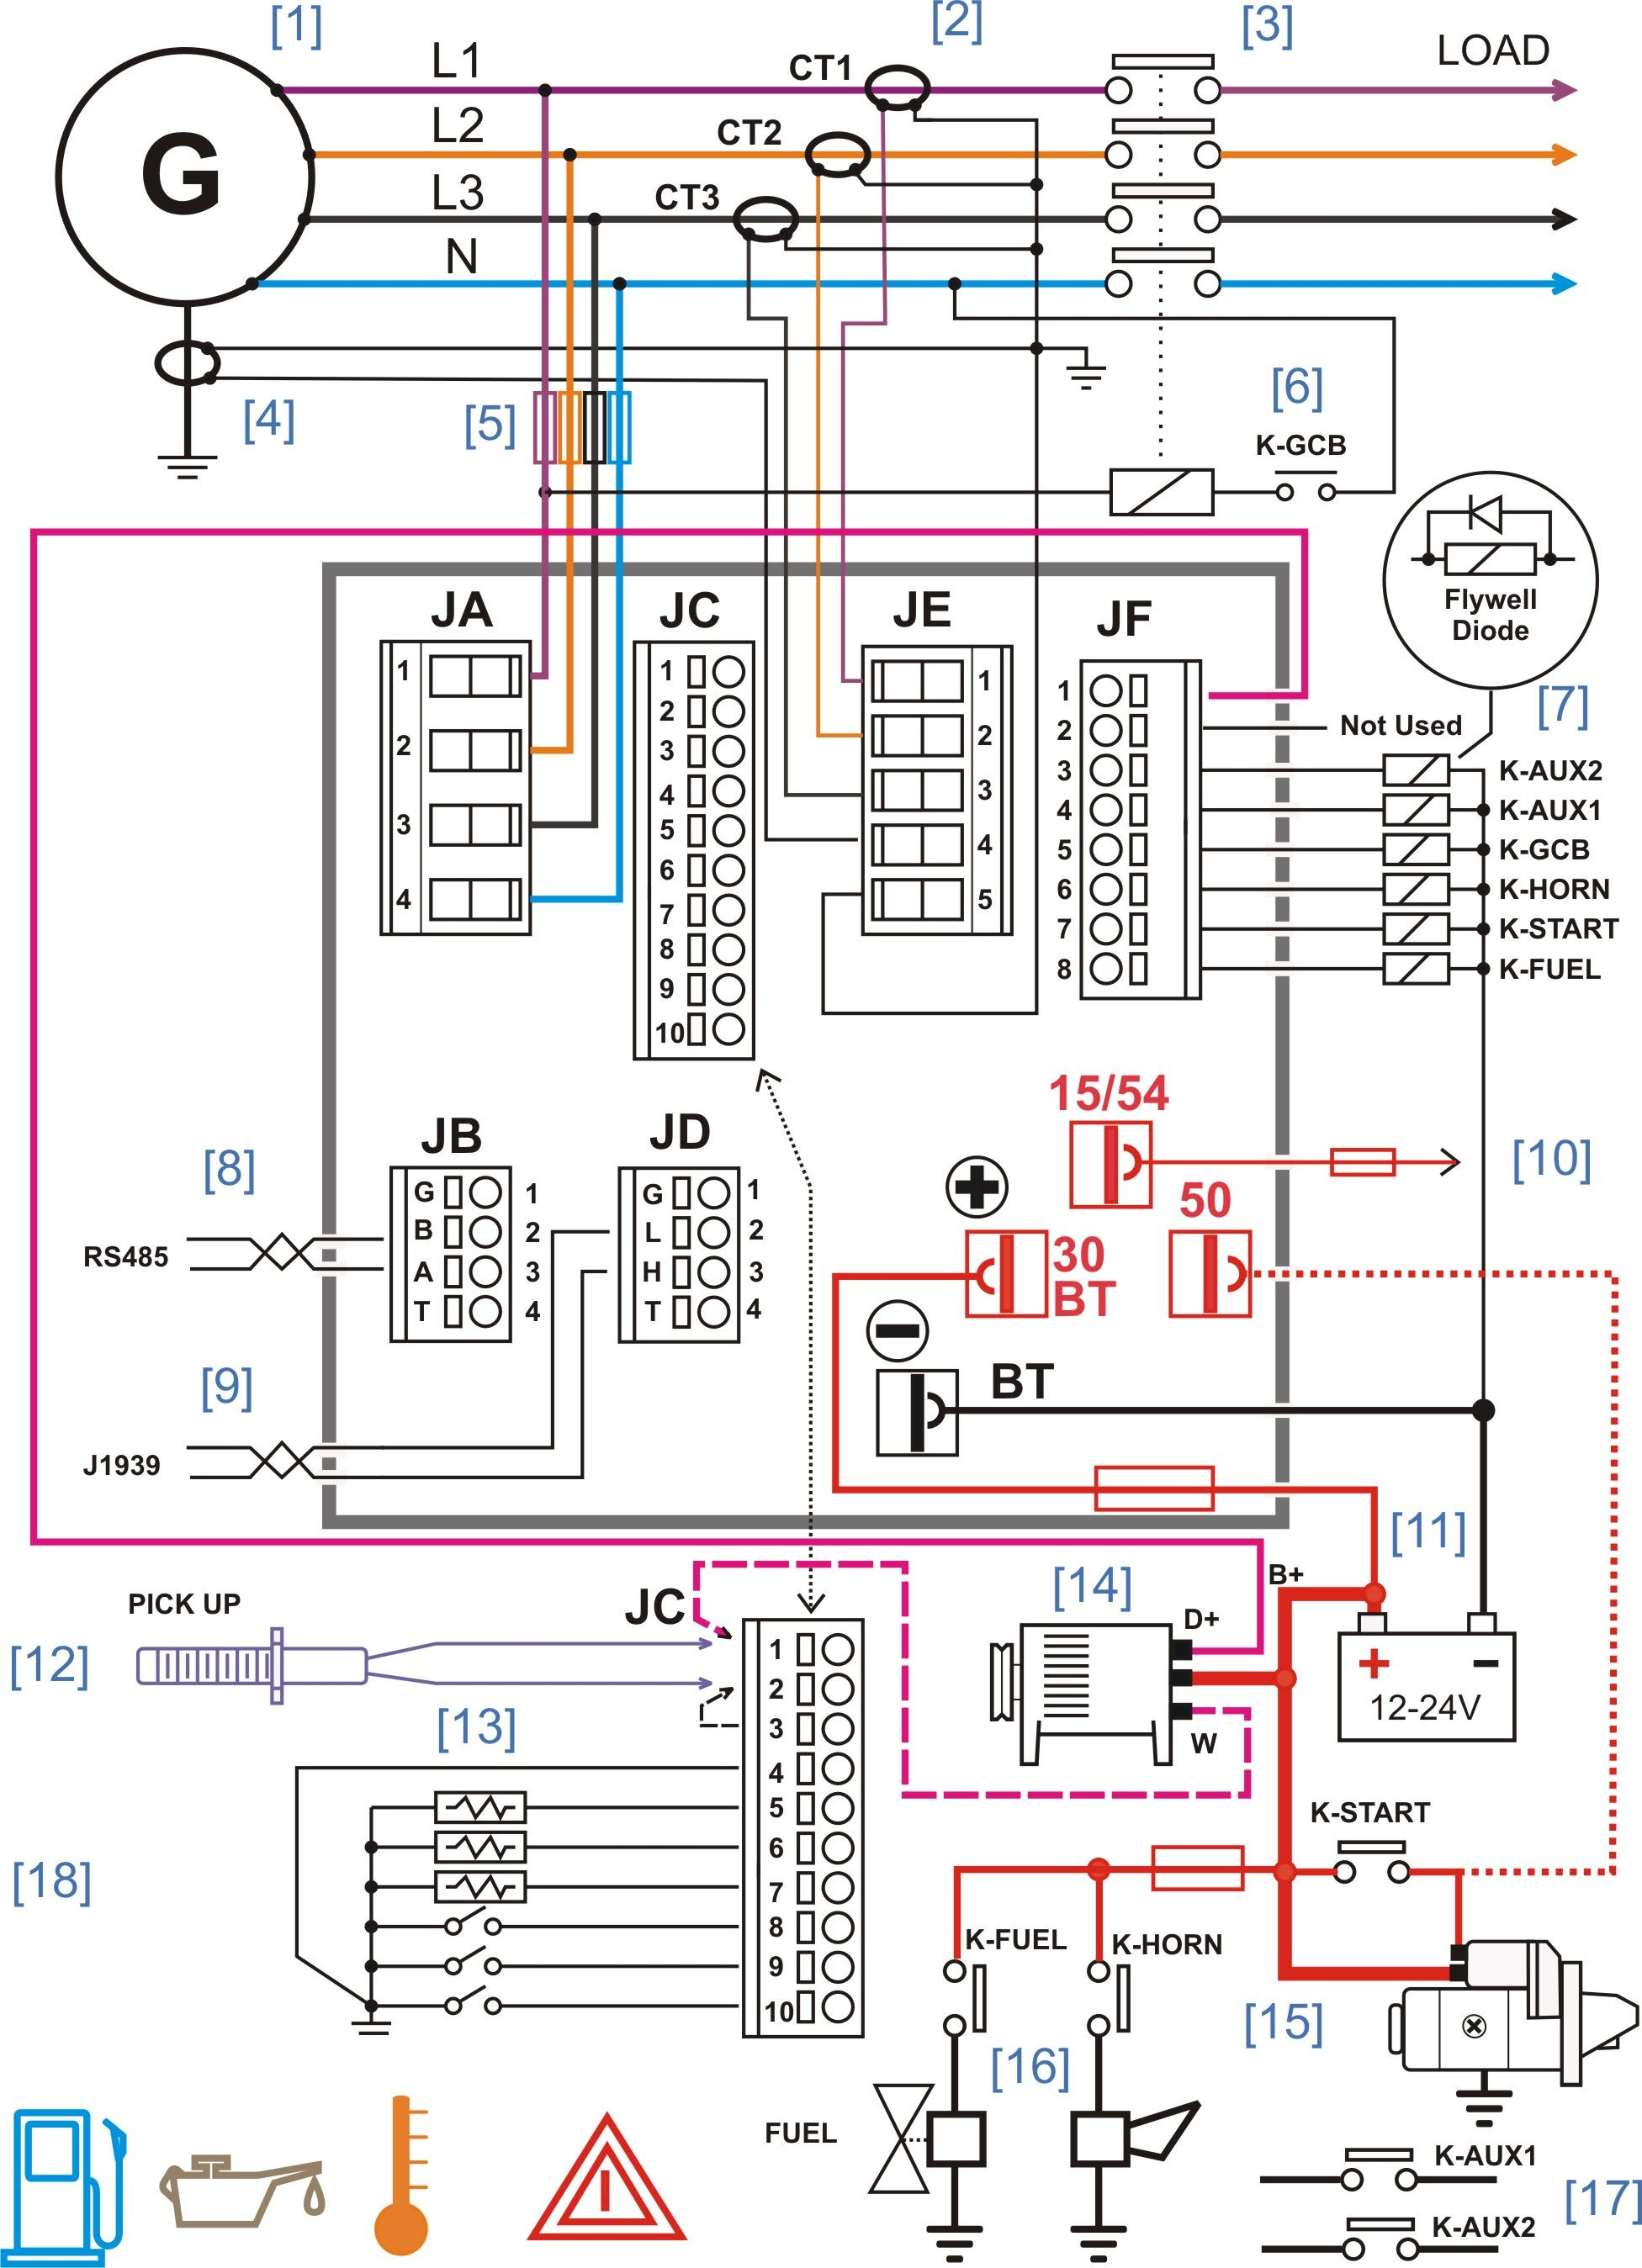 hight resolution of diesel generator control panel wiring diagram diesel generators rh pinterest com fg wilson generator control panel wiring diagram diesel generator control